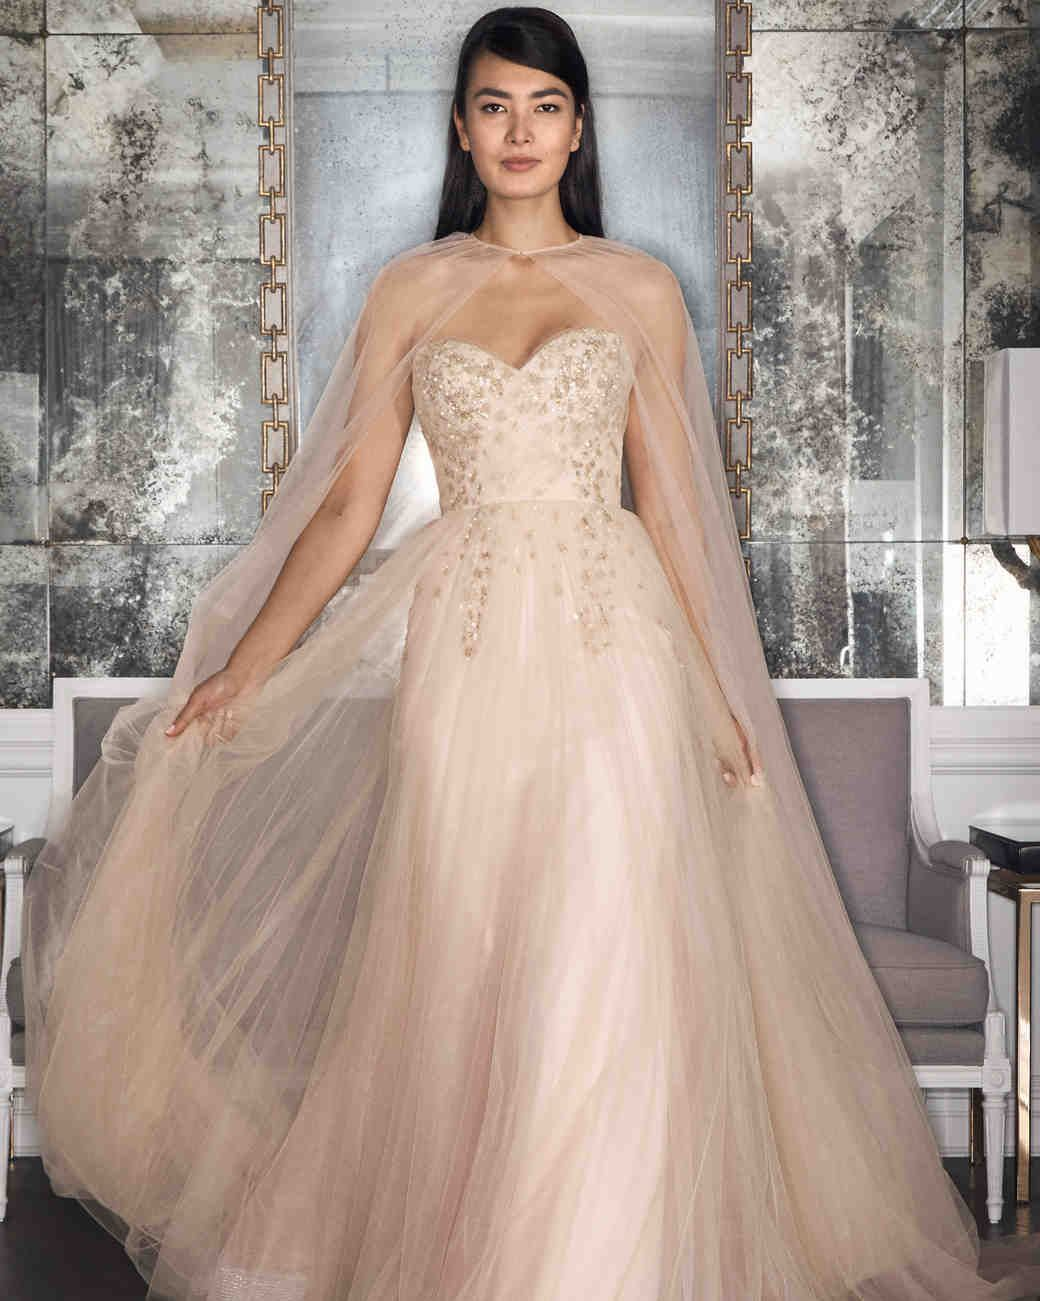 Outdoor wedding dresses with color